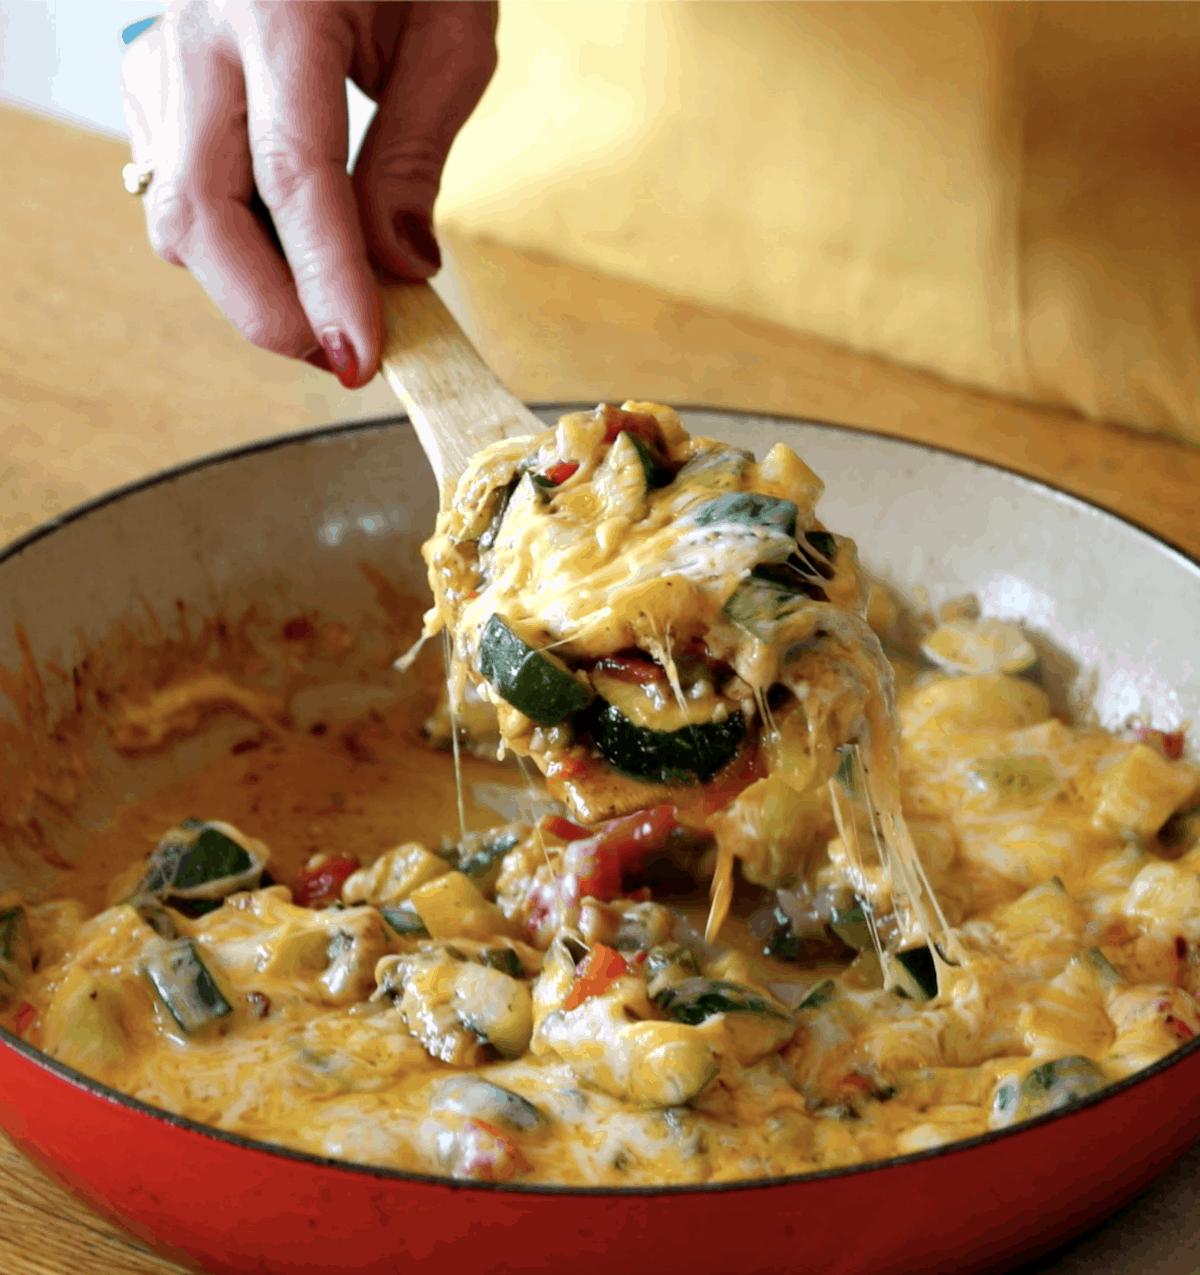 A red pan full of Calabacitas a Mexican side dish of squash covered with cheese with a hand spooning some of it out.